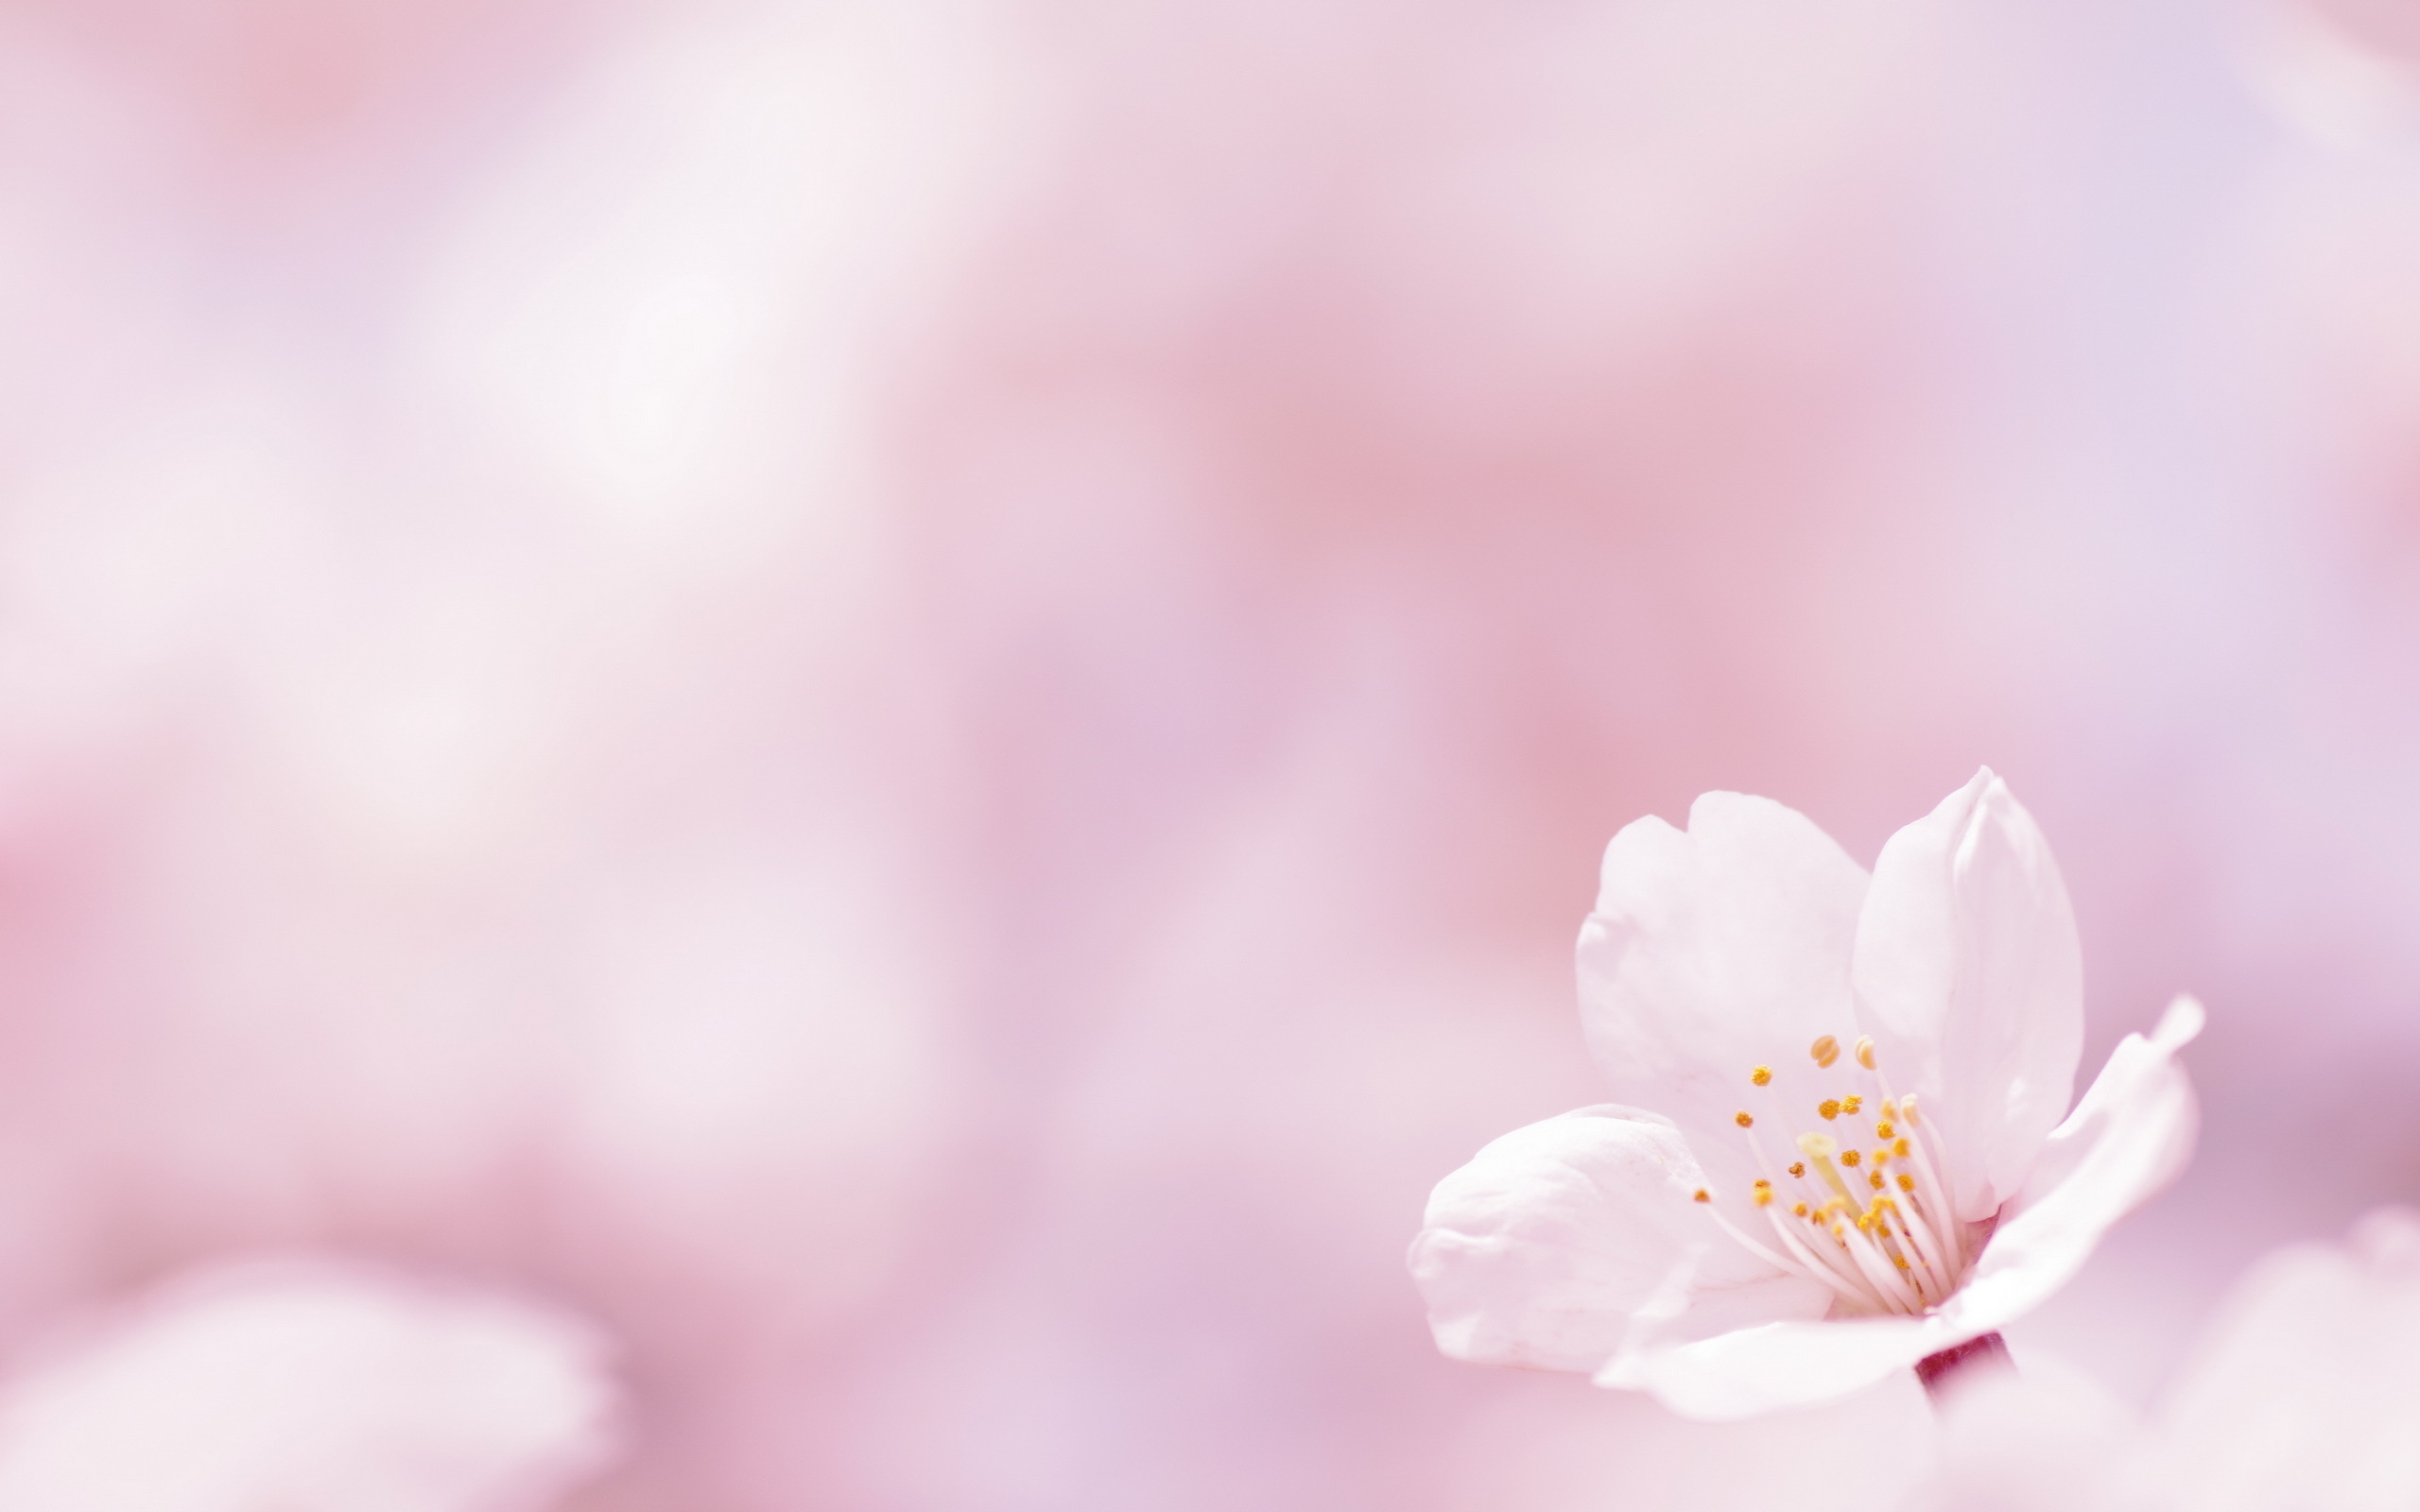 Free Pink Flowers Wallpaper 2560x1600 83307